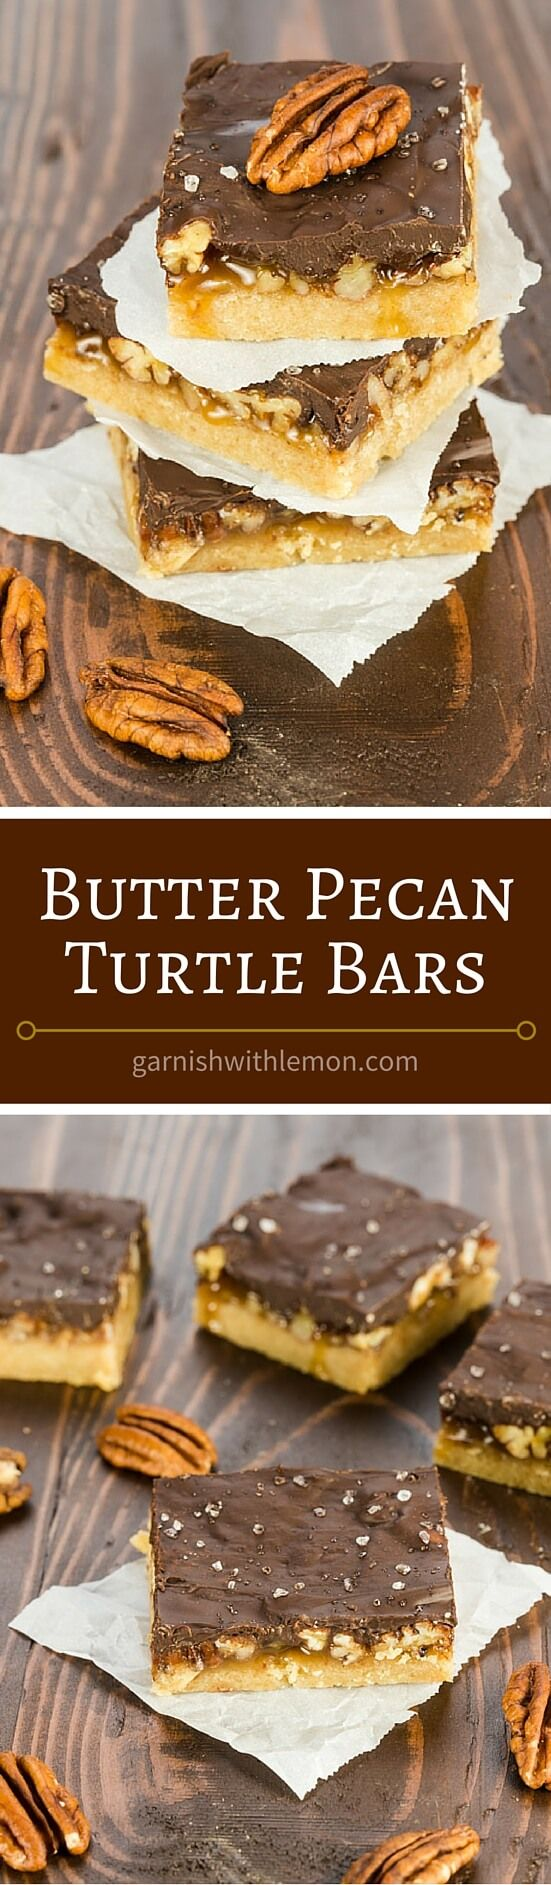 ... but simple Butter Pecan Turtle Bars. ~ http://www.garnishwithlemon.com